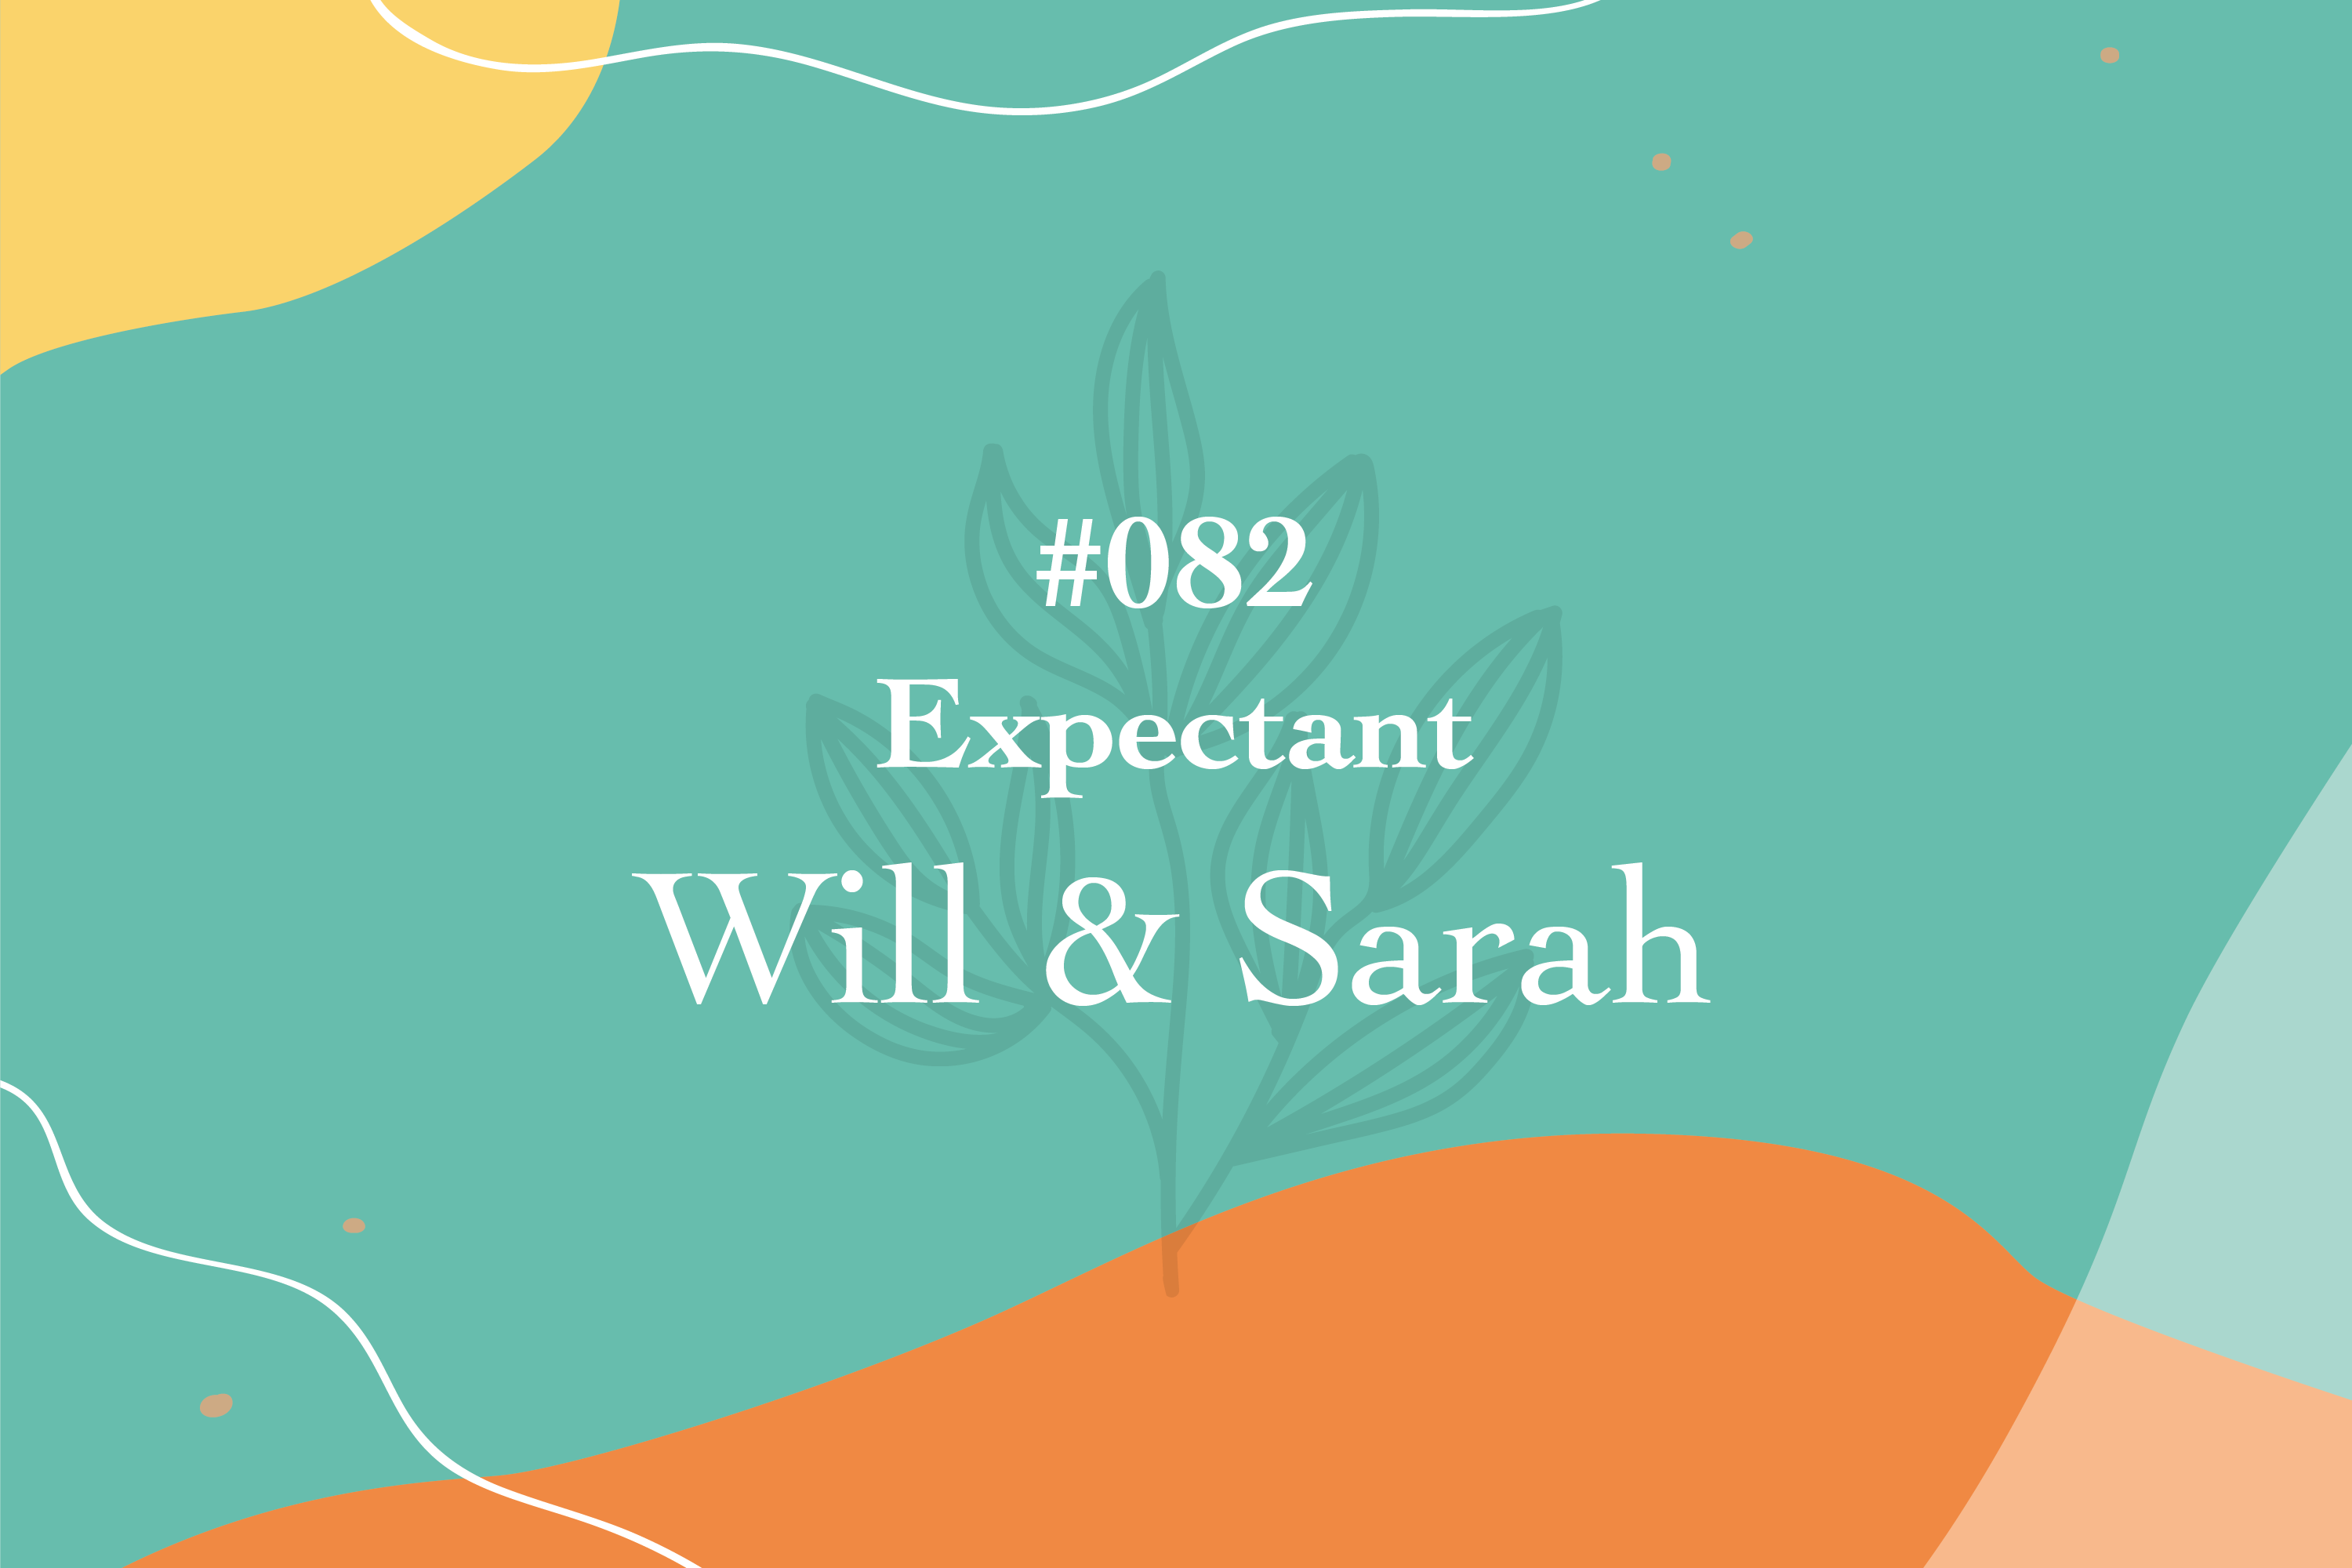 #082 Expectant: Will & Sarah